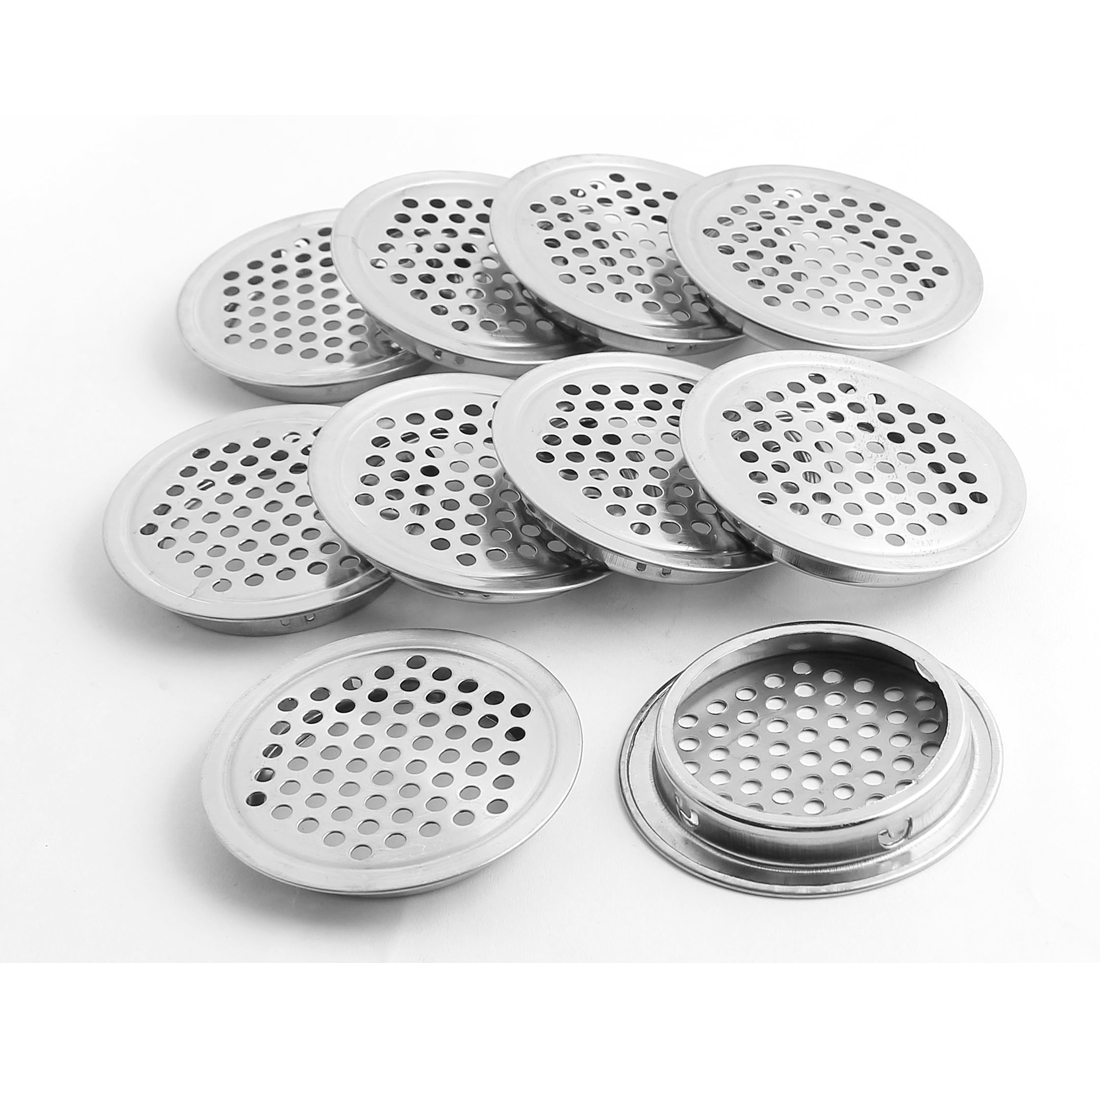 53mm Bottom Dia Round Flat Panel Cupboard Cabinet Air Vent Cover 10pcs